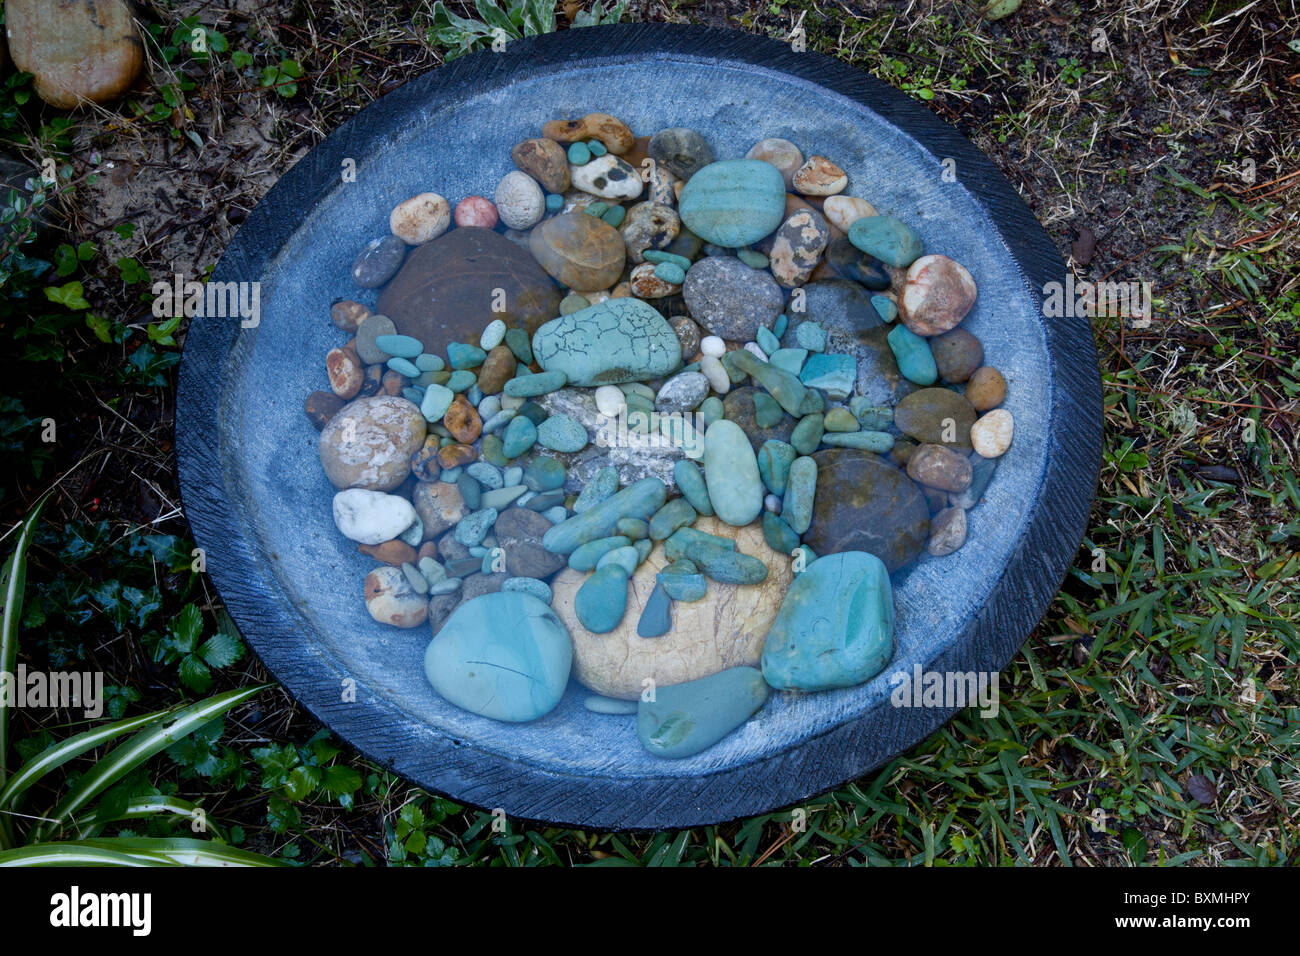 A Balinese cast stone concrete round bowl filled with multicoloured pebbles. Vasque Balinaise ronde et galets multicolores. - Stock Image